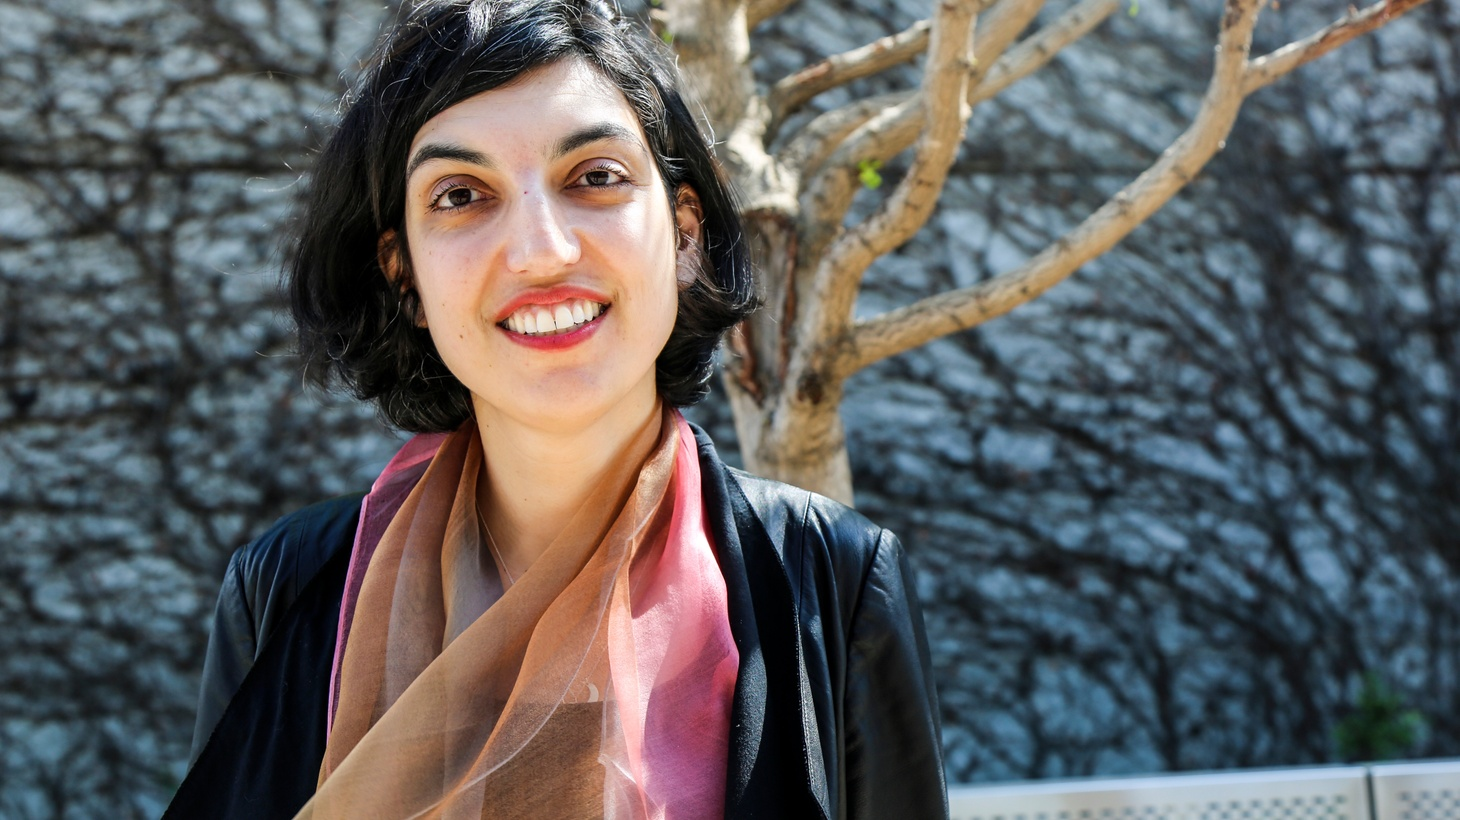 Selin, the heroine of Batuman's autobiographical first novel, The Idiot, is an 18-year-old Harvard freshman of Turkish-American descent. Set in 1995, the novel observes the rise of internet culture.